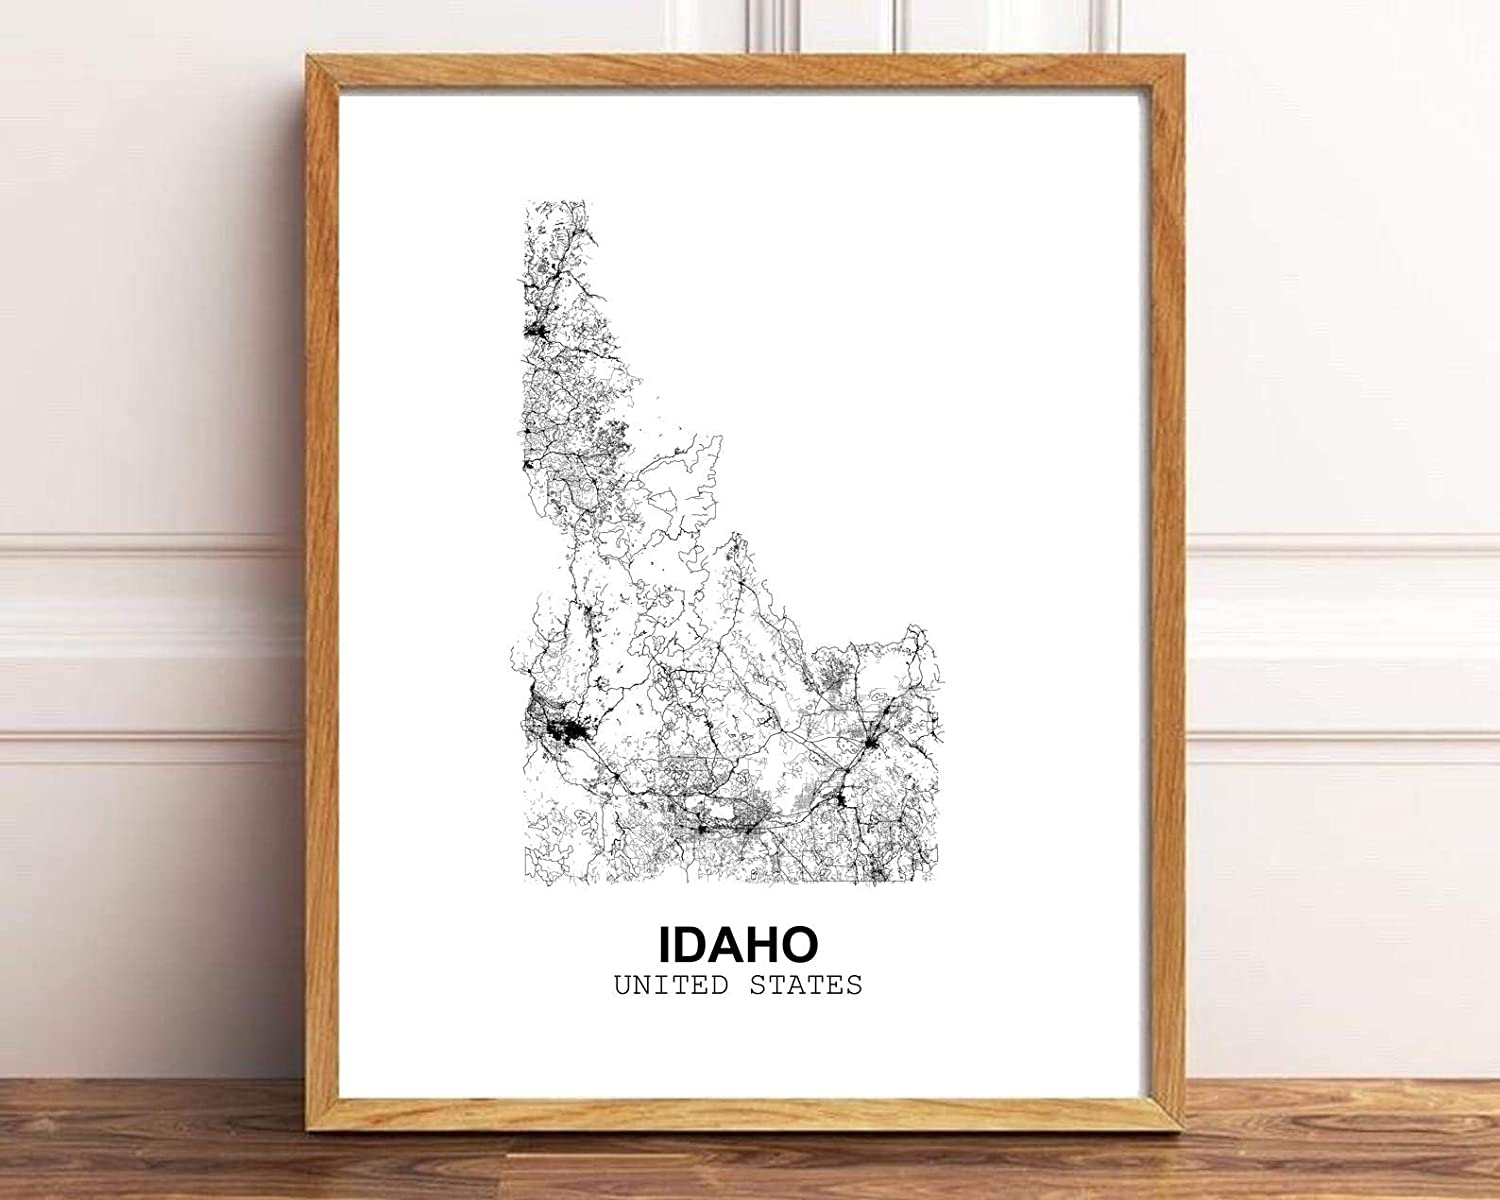 Buy Eleville 20X20 Unframed Idaho United States Country View ...